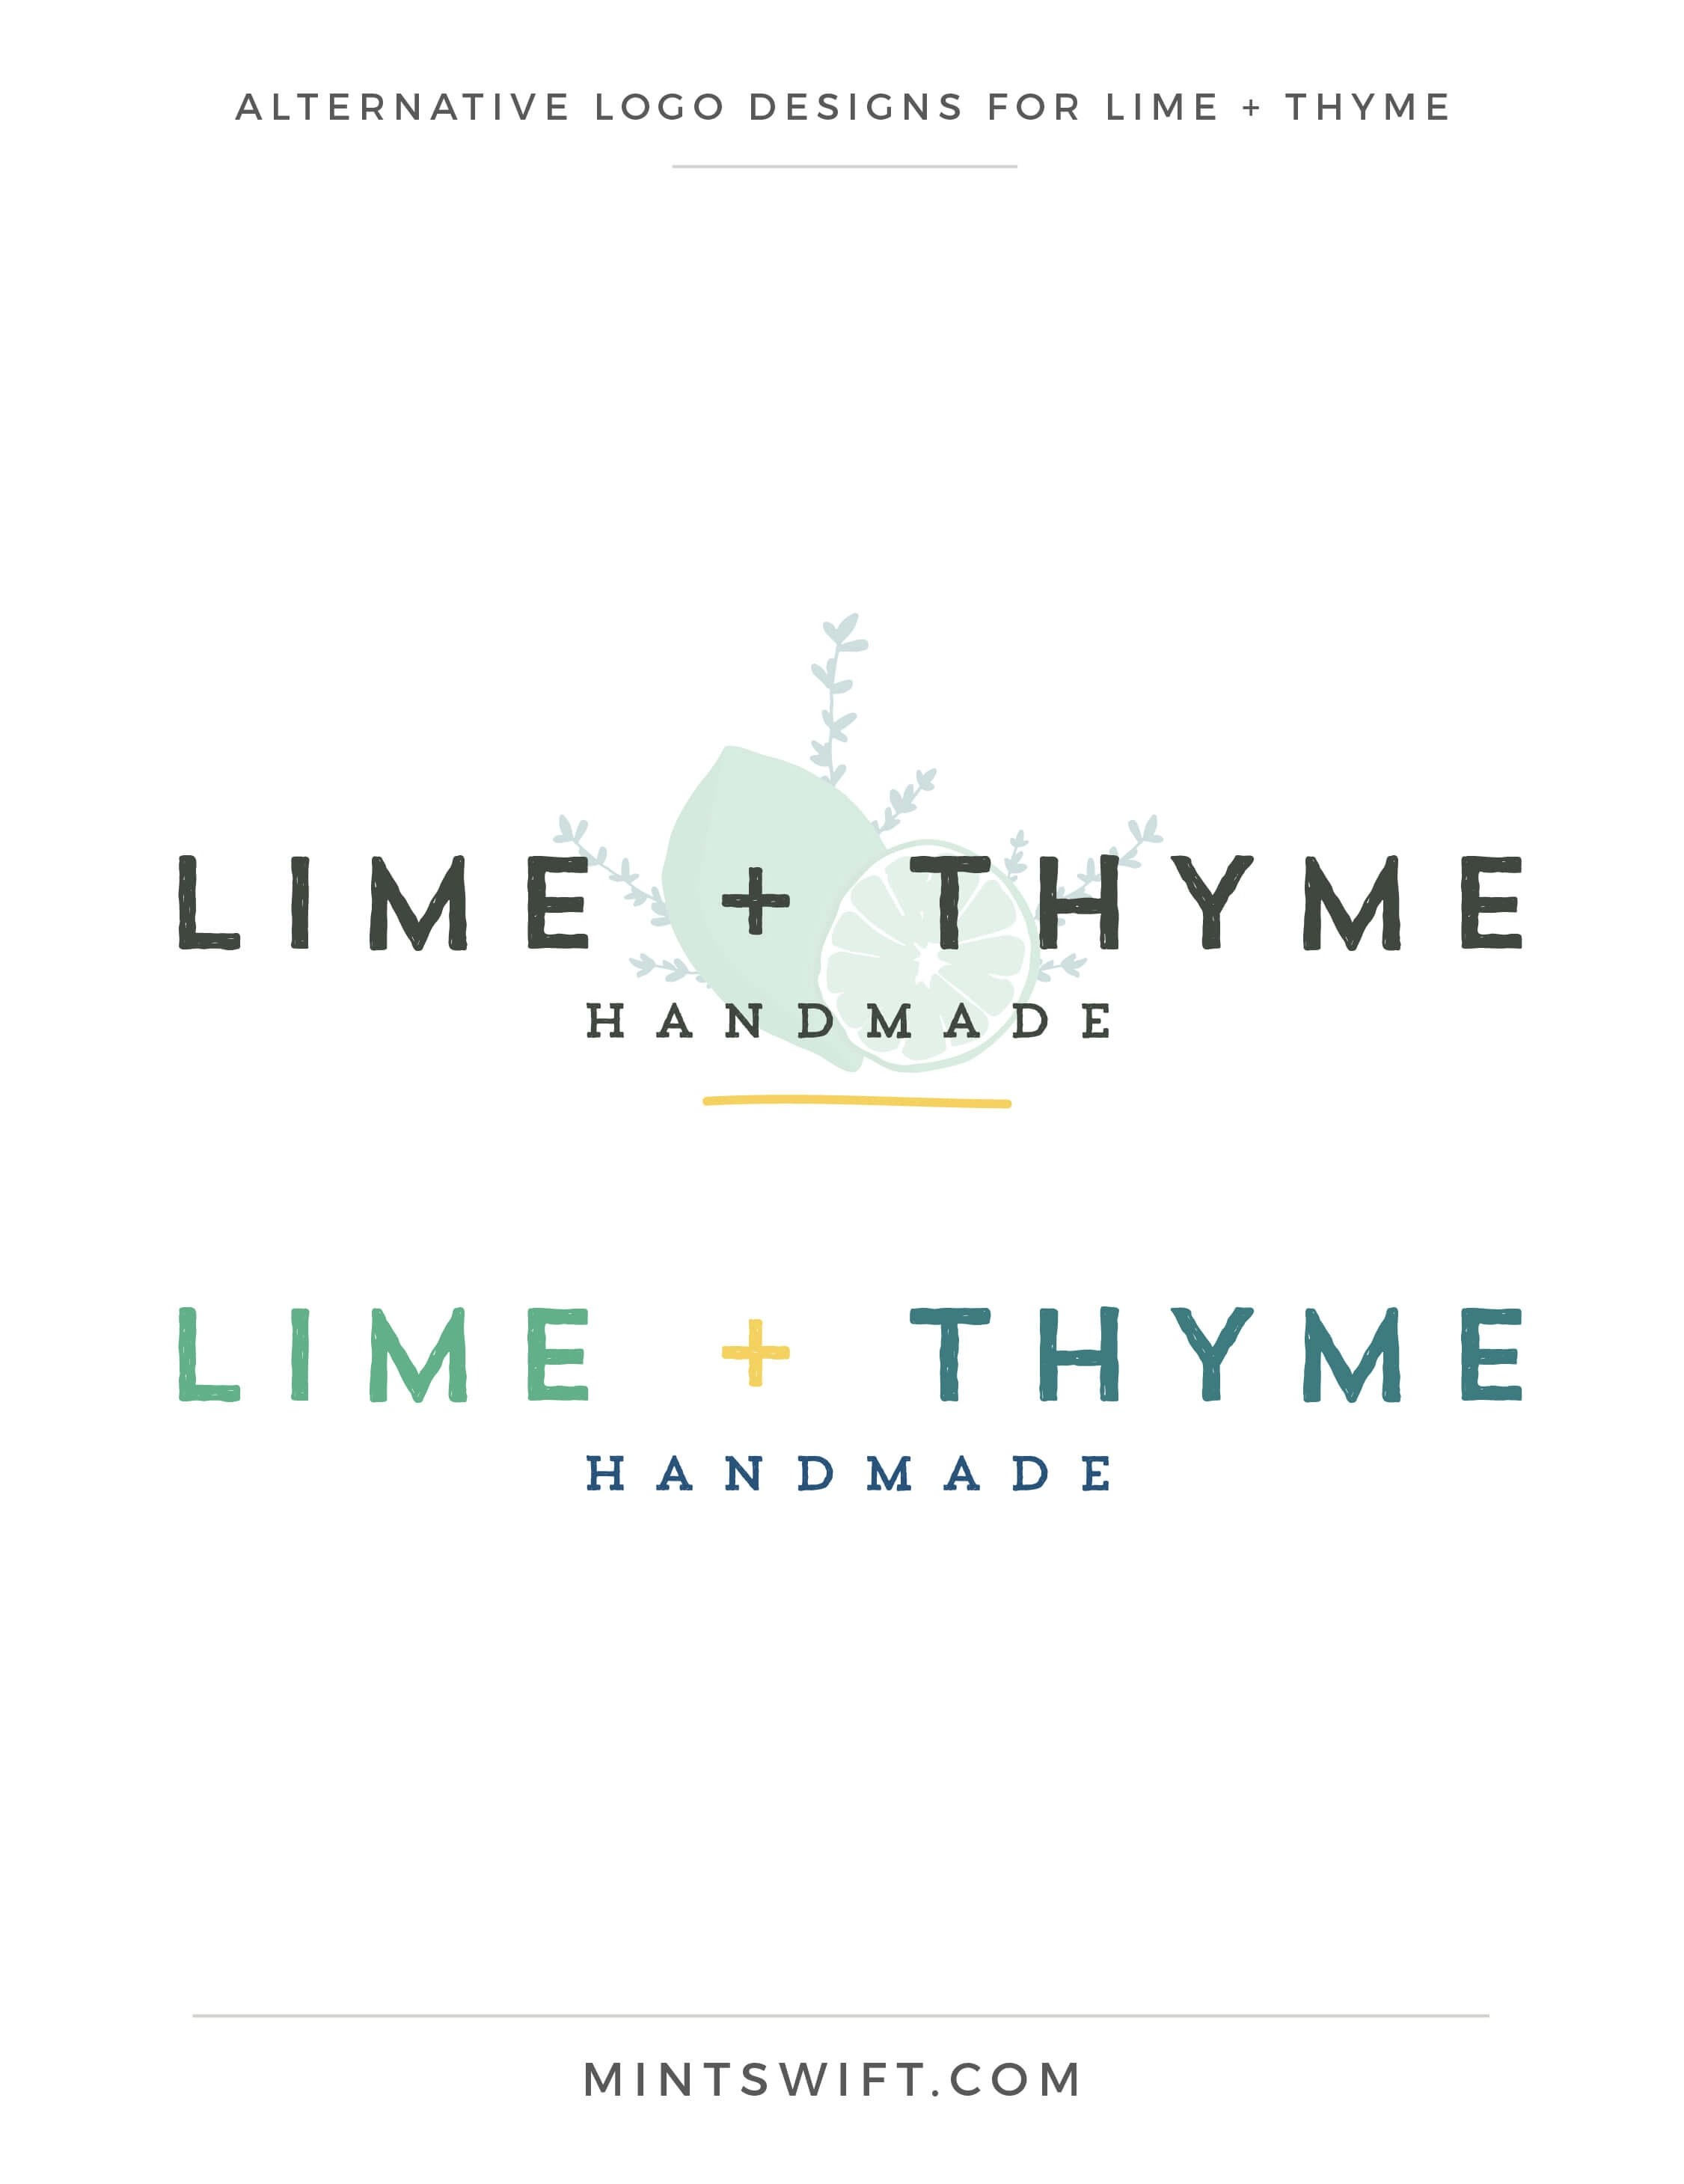 Lime + Thyme - Alternative Logo Designs - Brand & Website Design - MintSwift